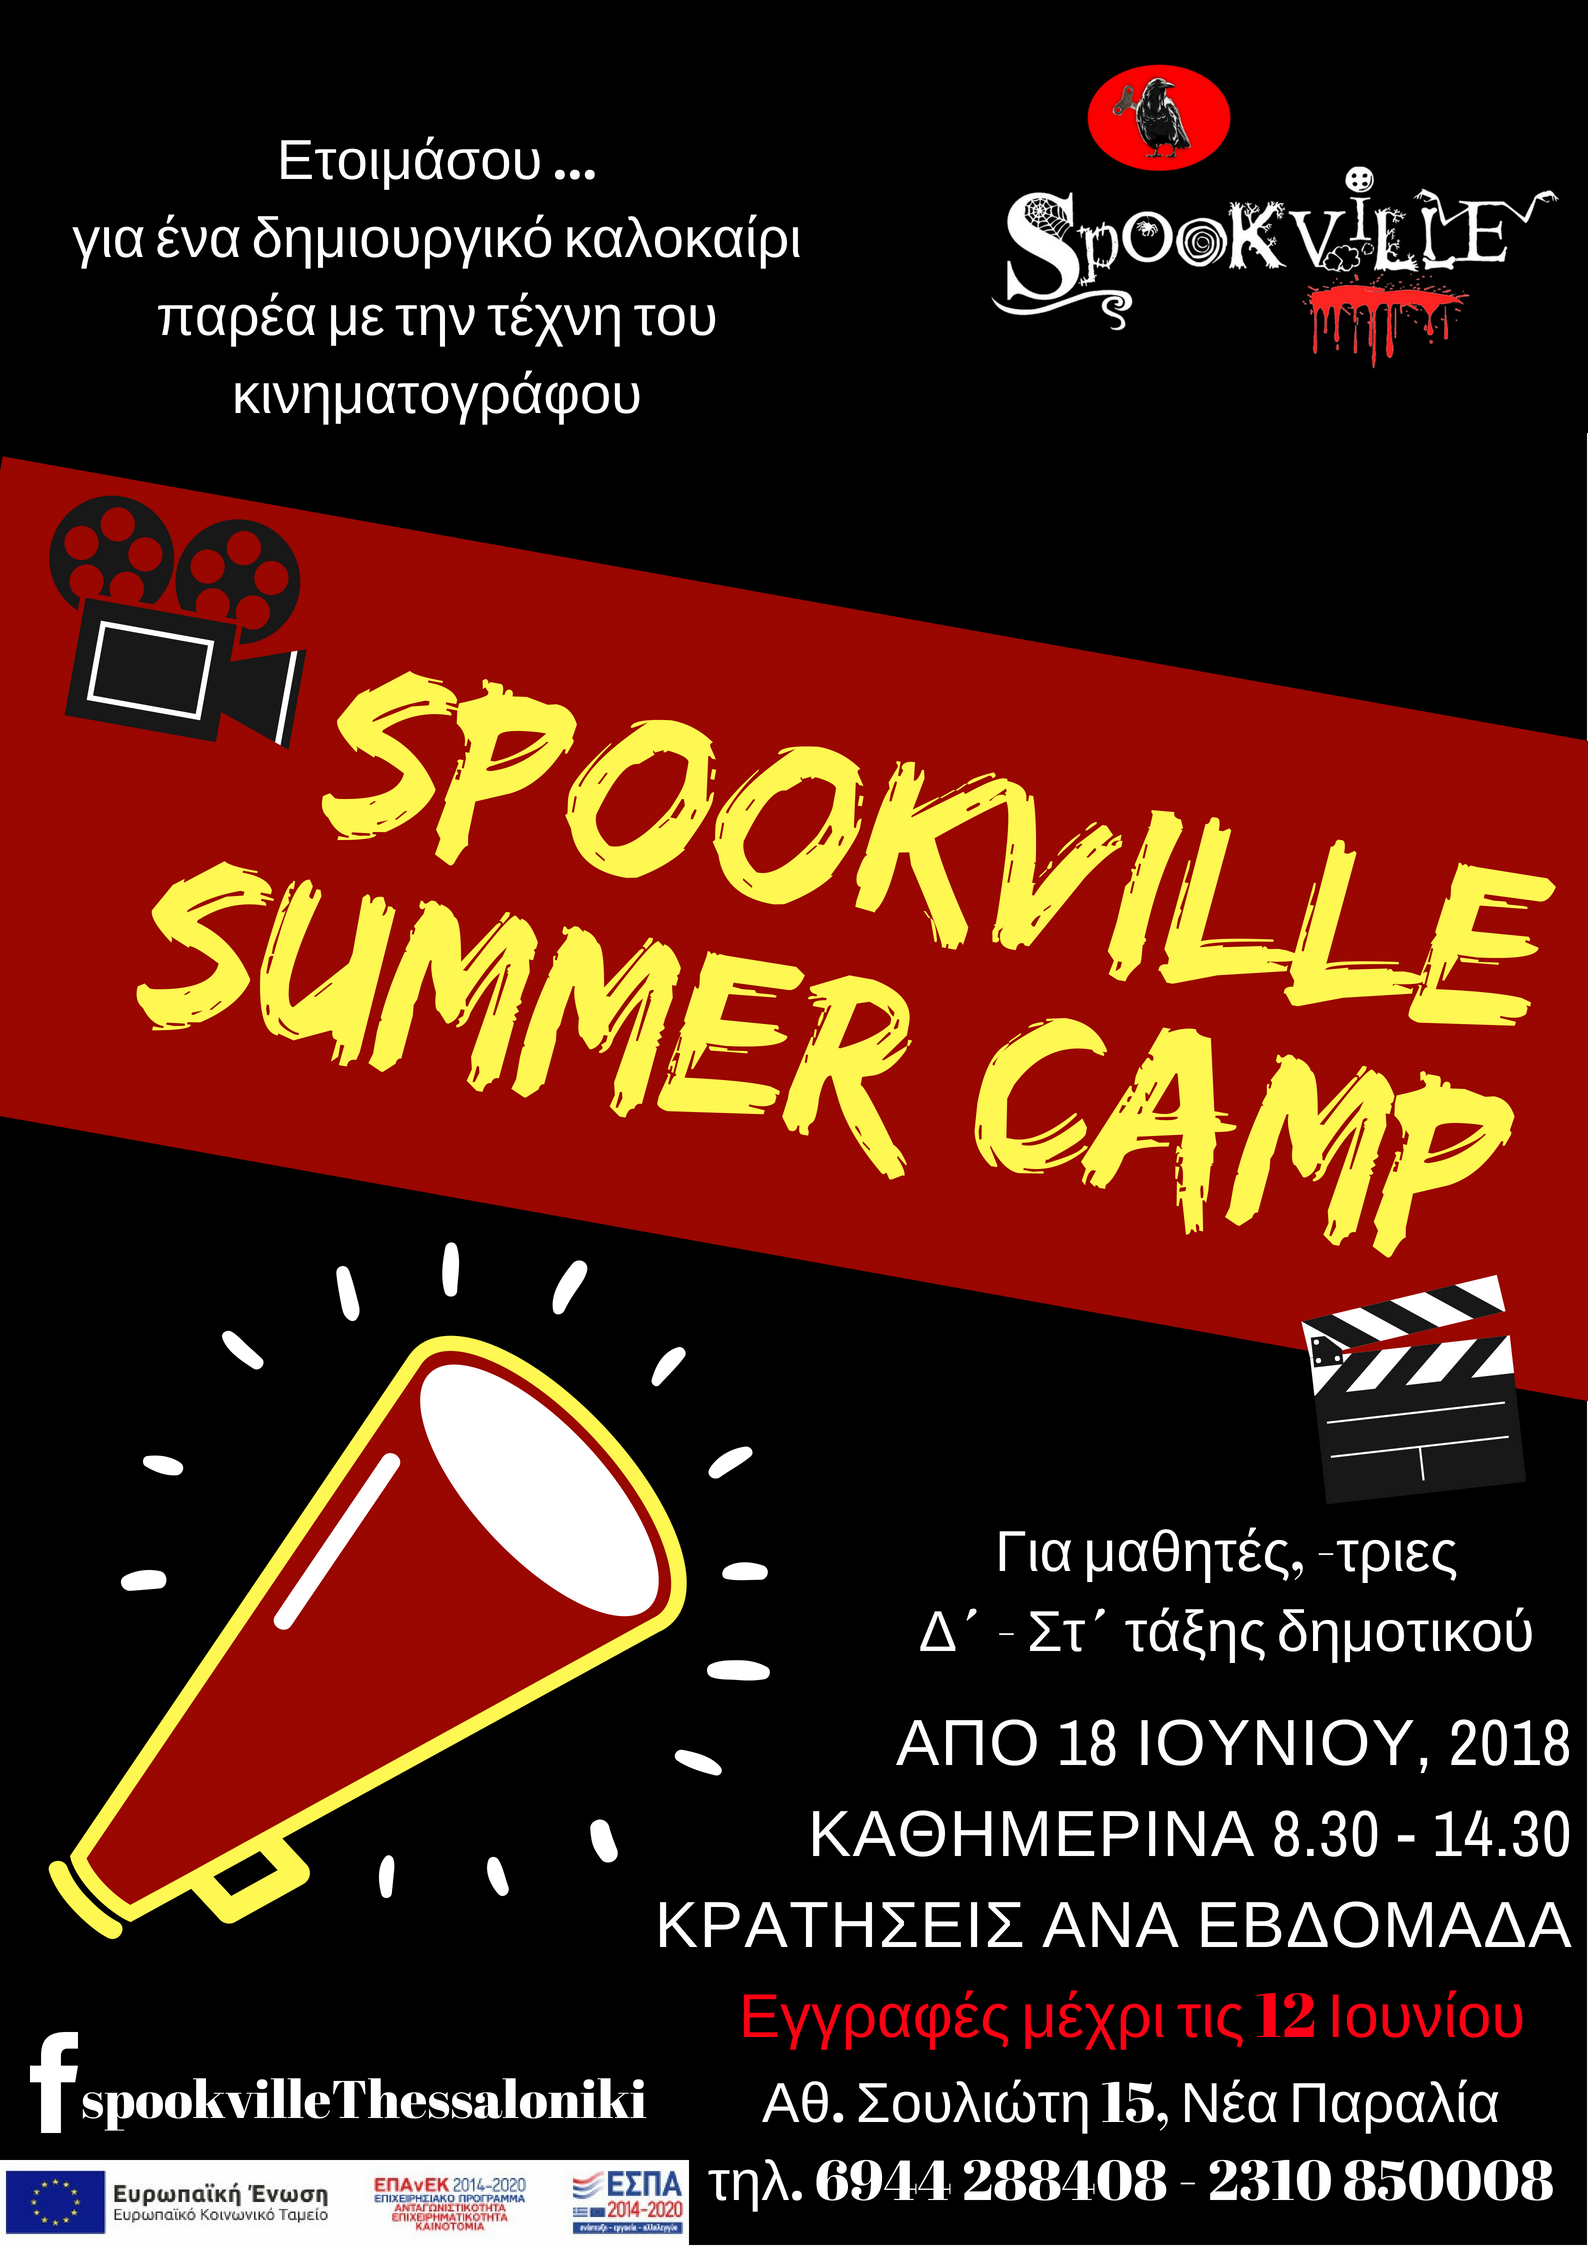 spookville summer camp 2